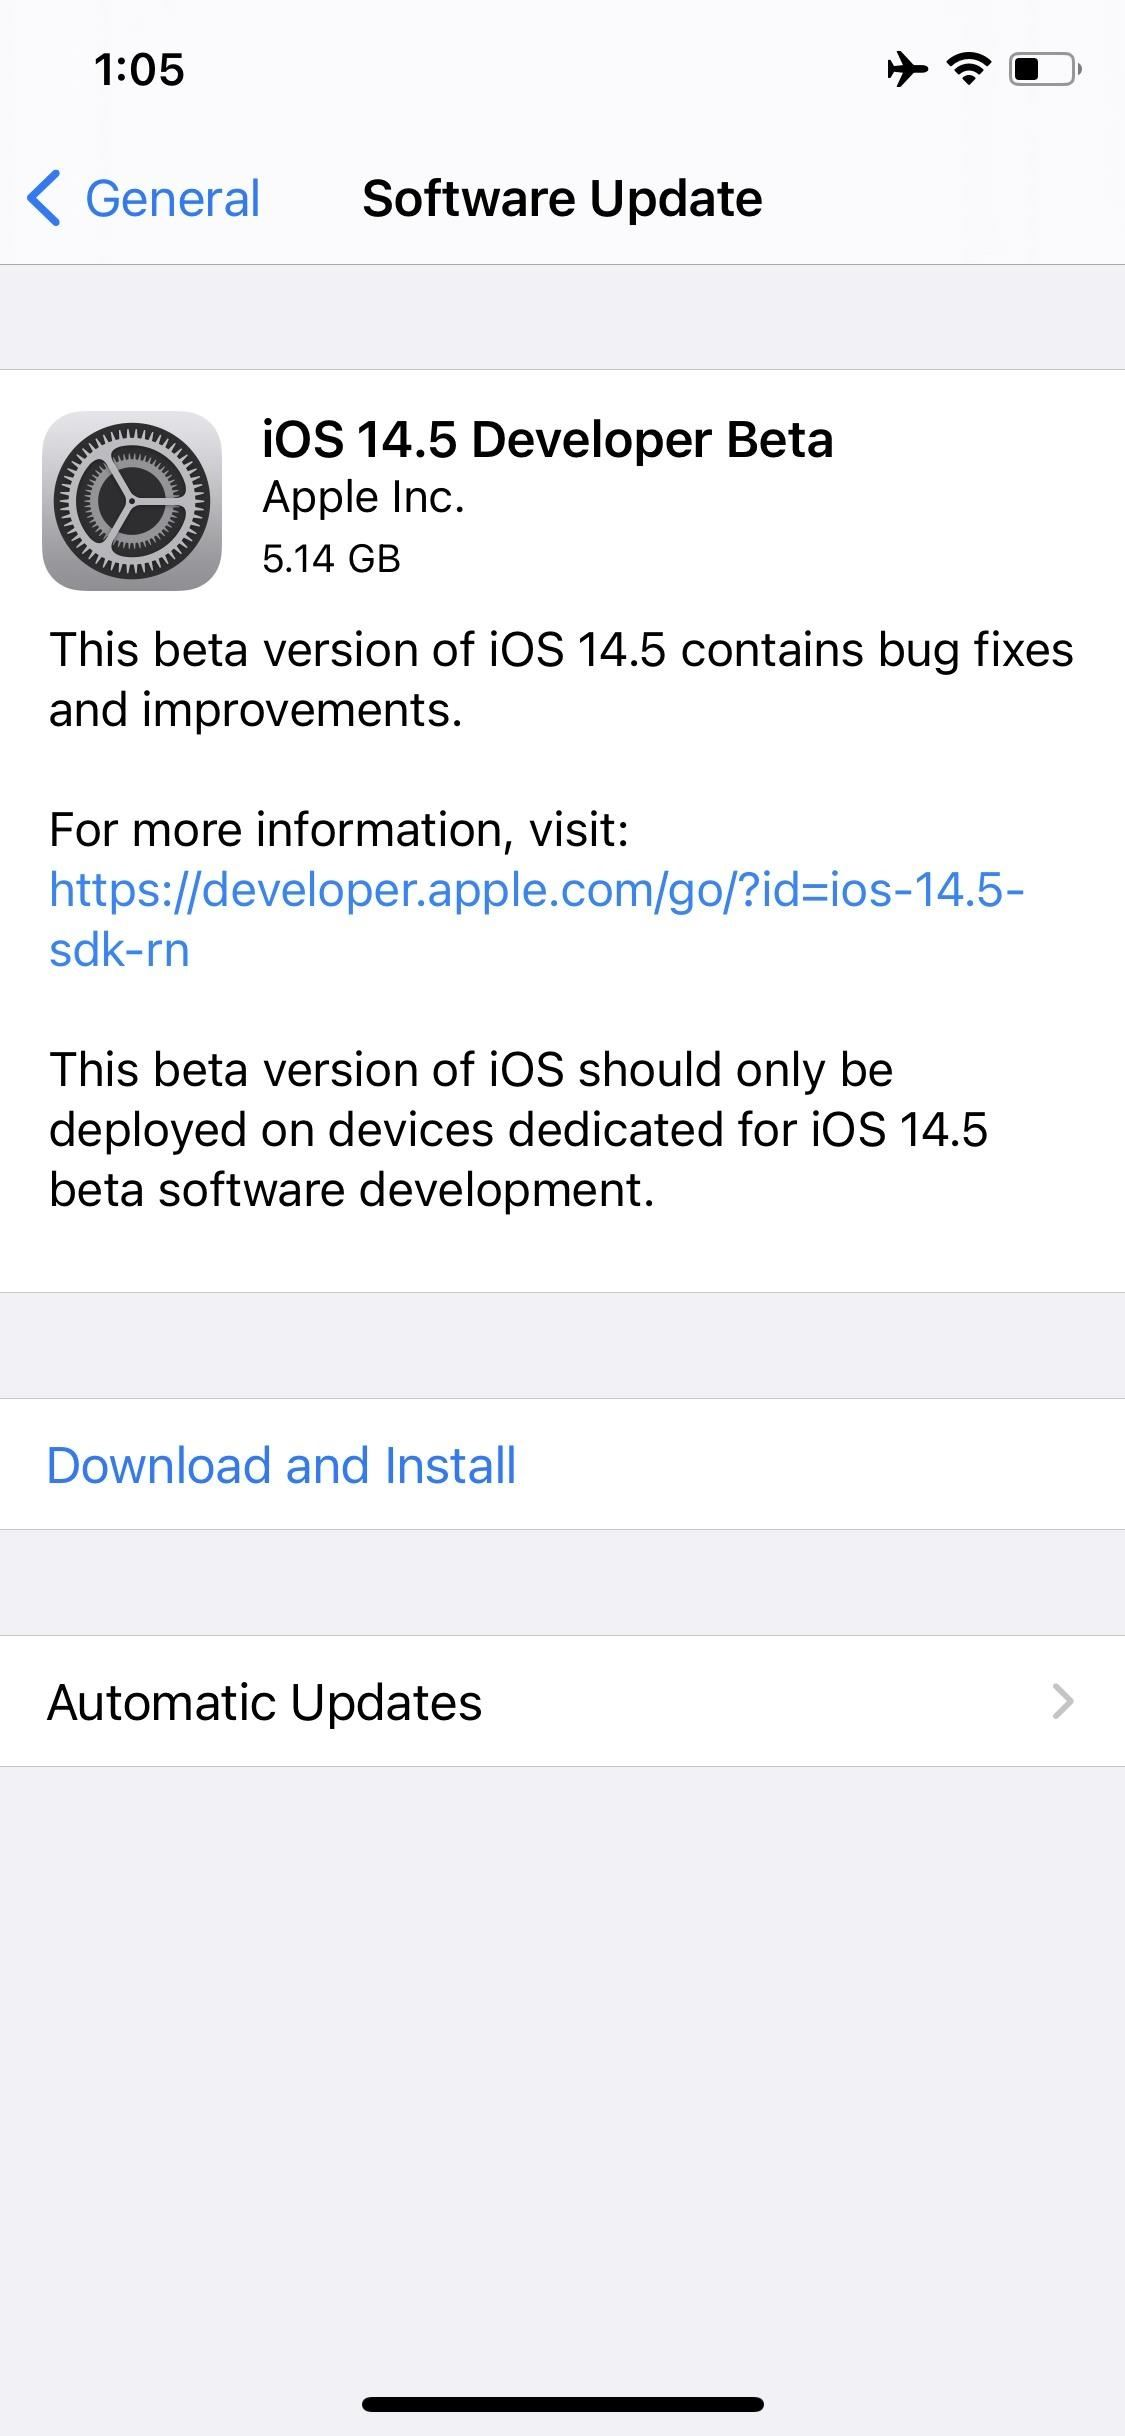 Apple Releases First iOS 14.5 Developer Beta for iPhone, Introduces Redesigned 'Software Update' Screen